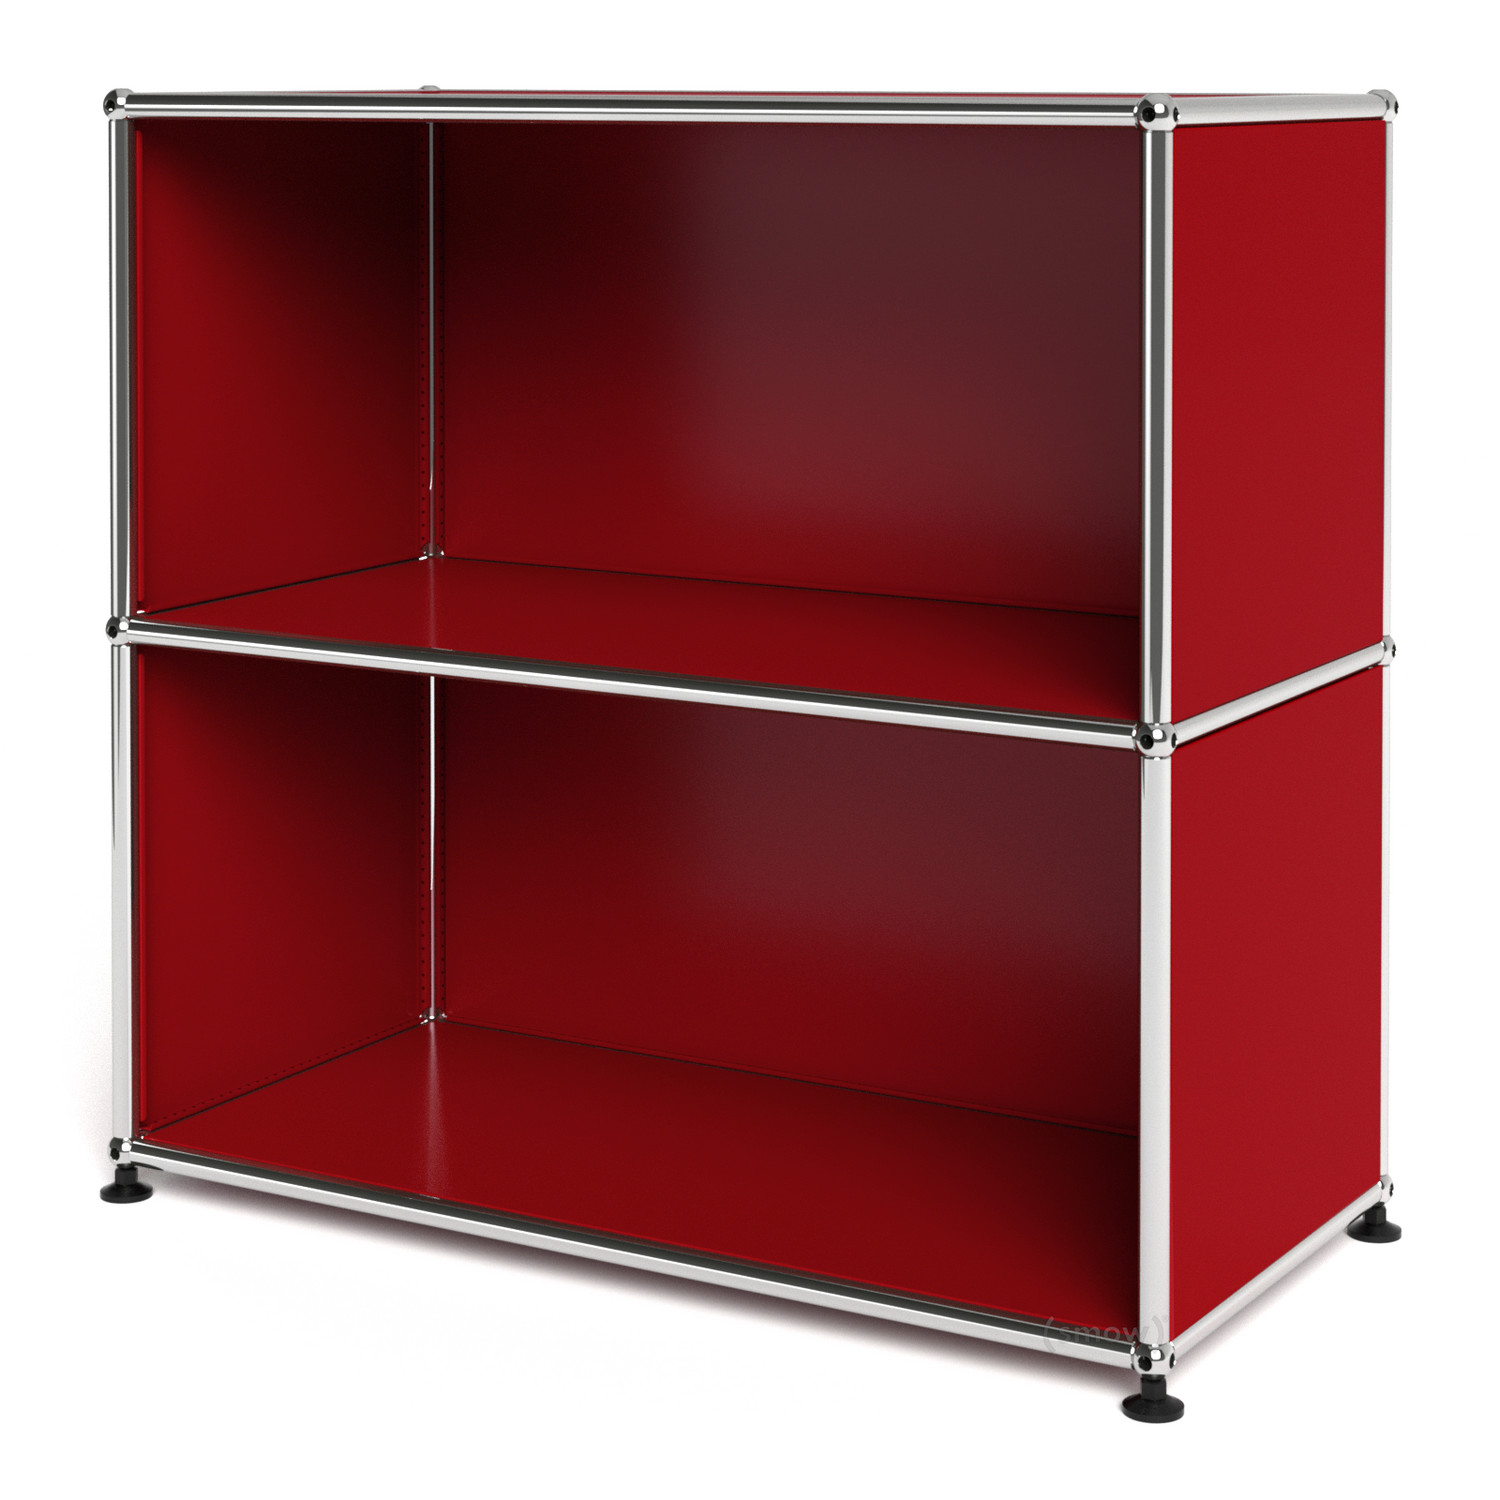 Usm haller sideboard m open usm ruby red by fritz haller for Sideboard usm